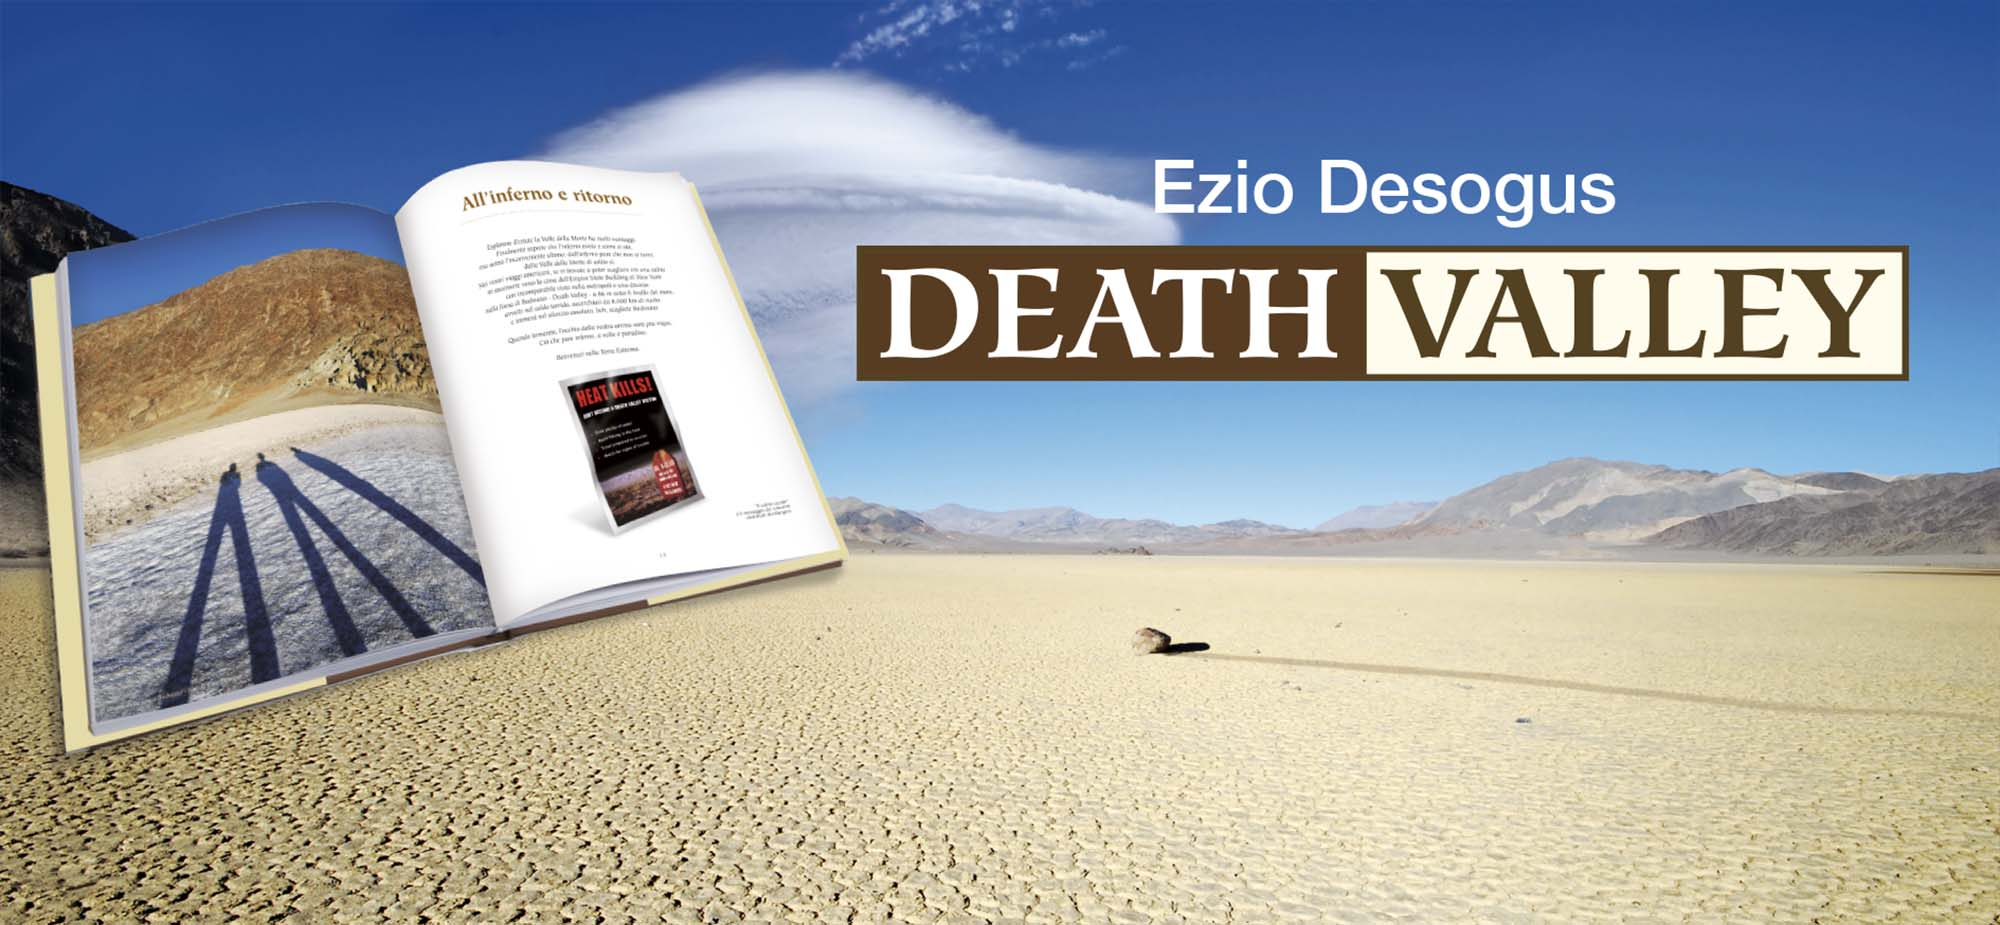 death valley libro valle della morte libro race track playa